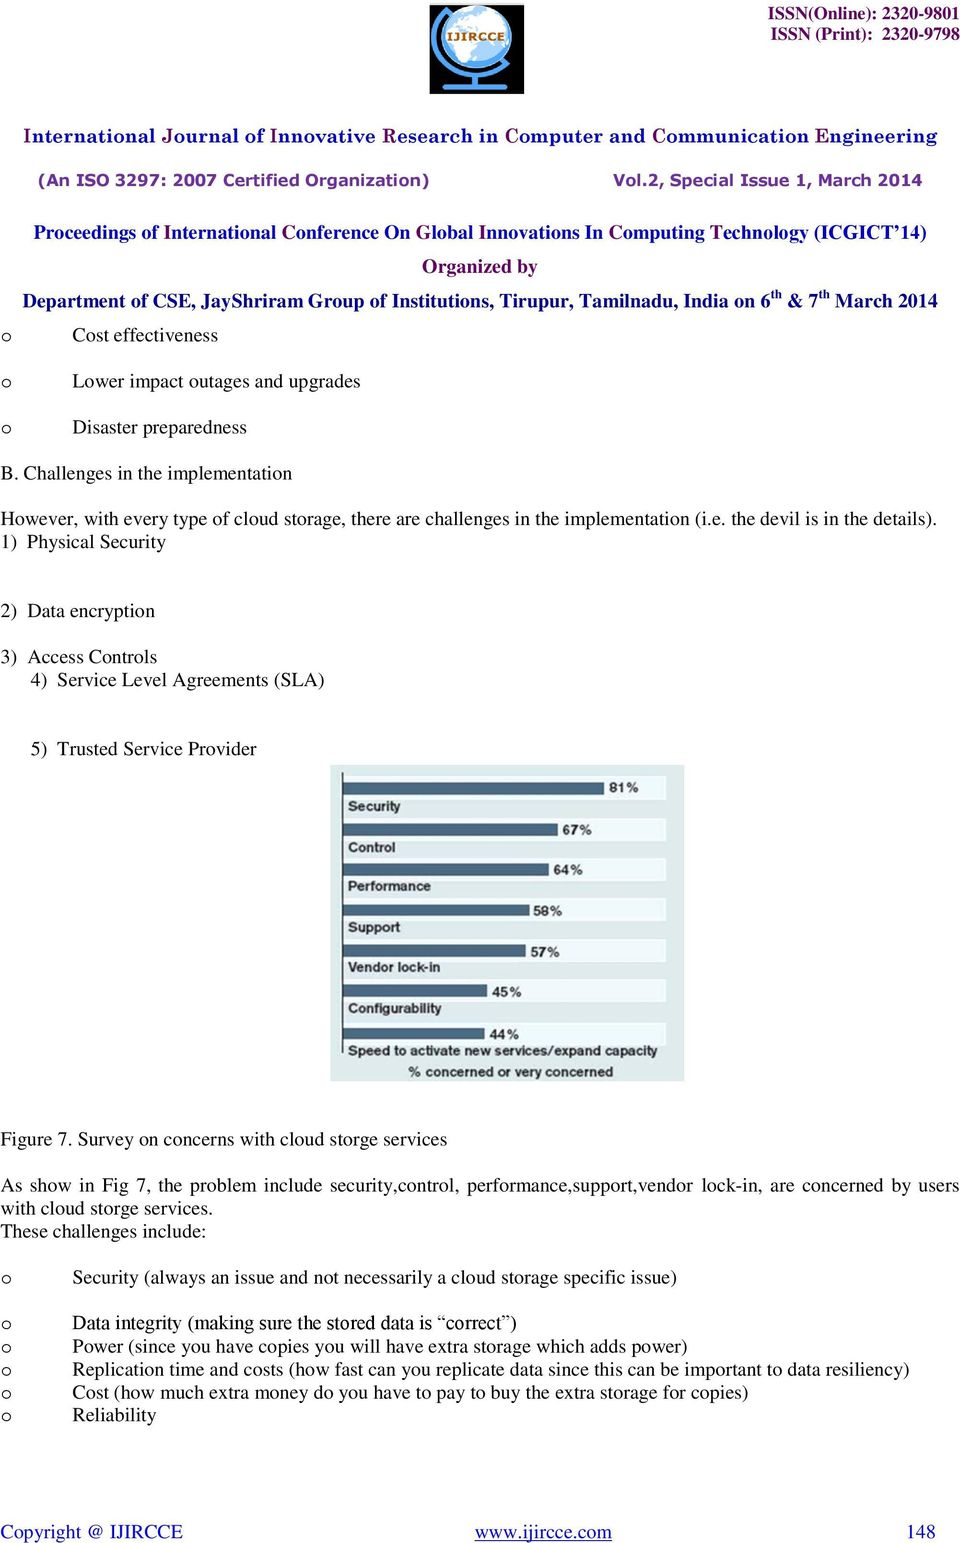 Survey n cncerns with clud strge services As shw in Fig 7, the prblem include security,cntrl, perfrmance,supprt,vendr lck-in, are cncerned by users with clud strge services.